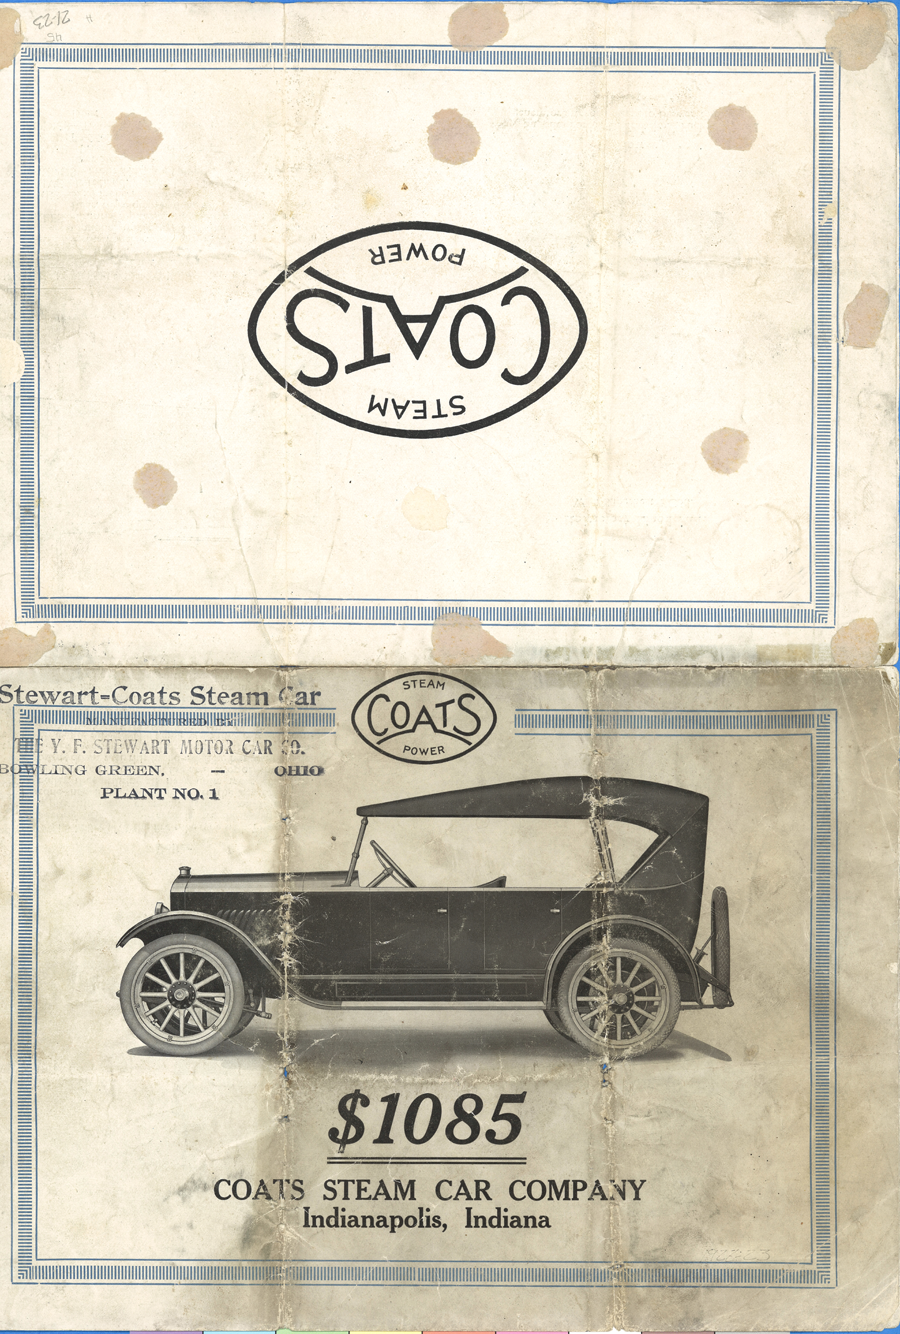 Coats Steam Car Trade Catalogue, 1922 Indianapolis IN Y. F. Stewart